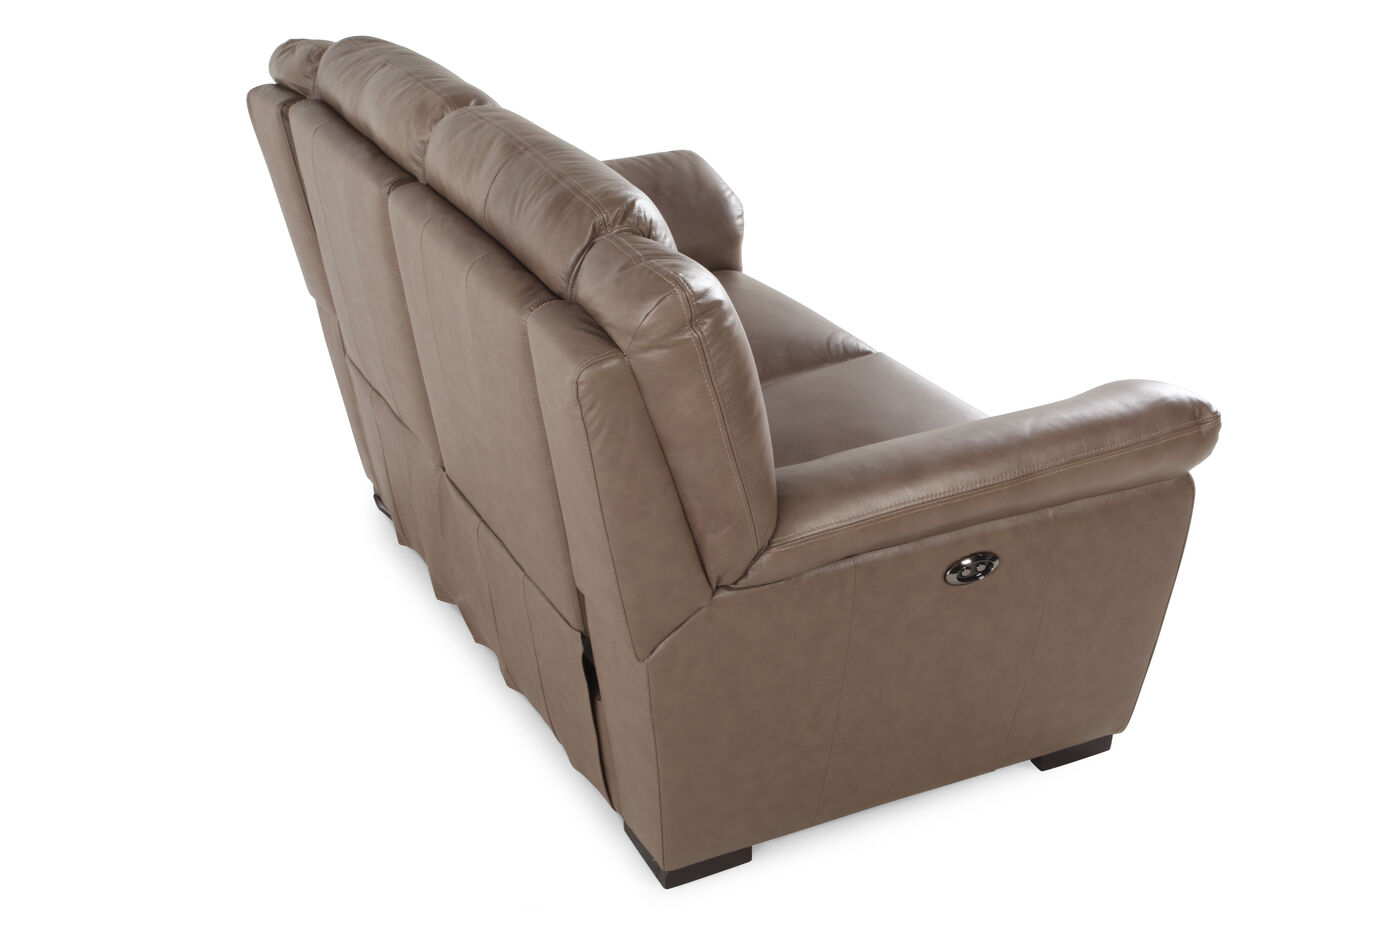 Power Reclining Contemporary 66 Loveseat In Nutmeg Brown Mathis Brothers Furniture